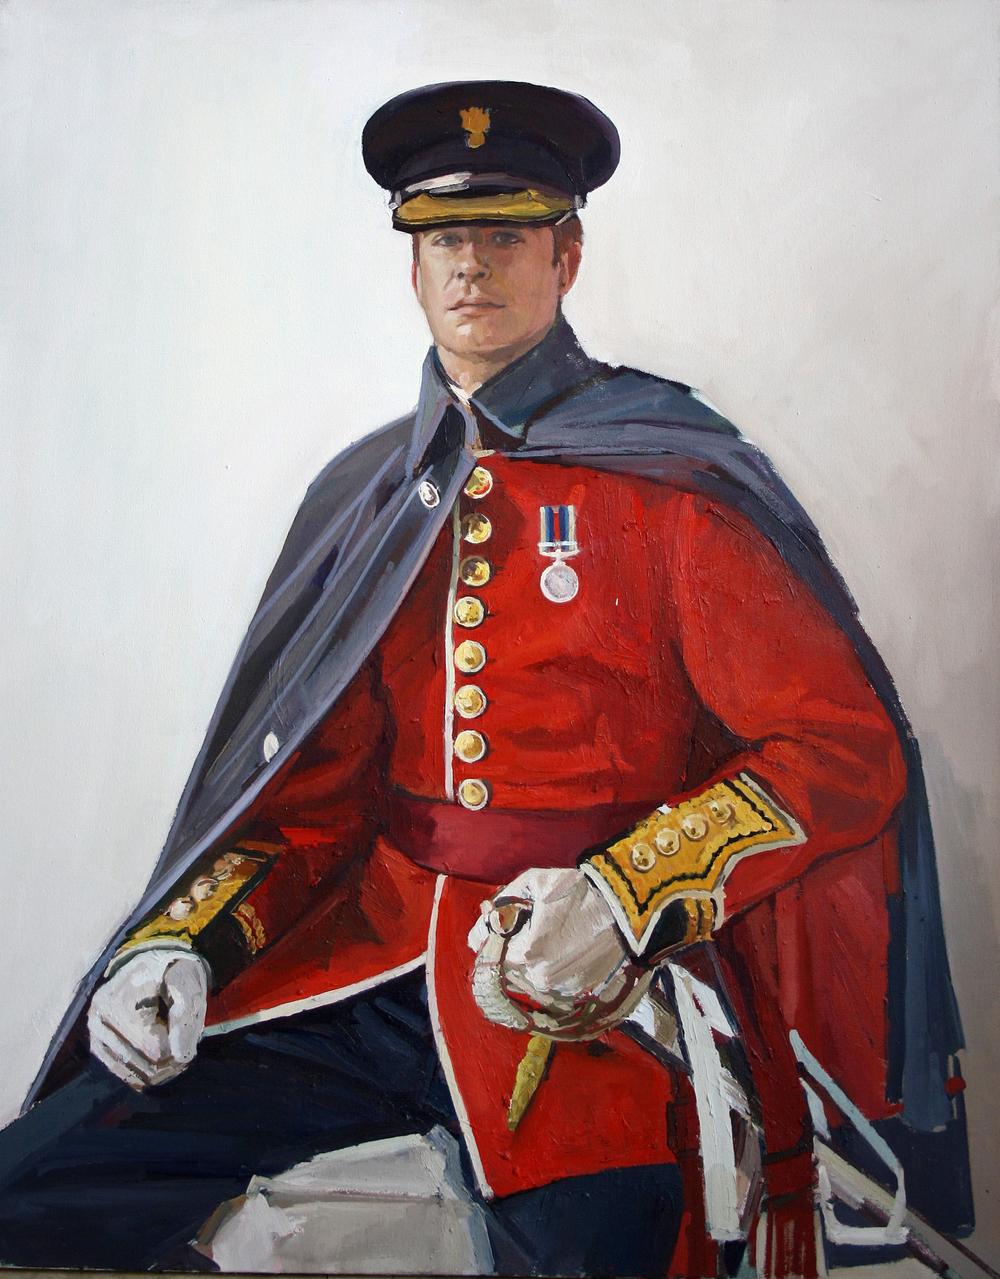 100 x 80cm Captain Alexander Budge, Oil on Canvas